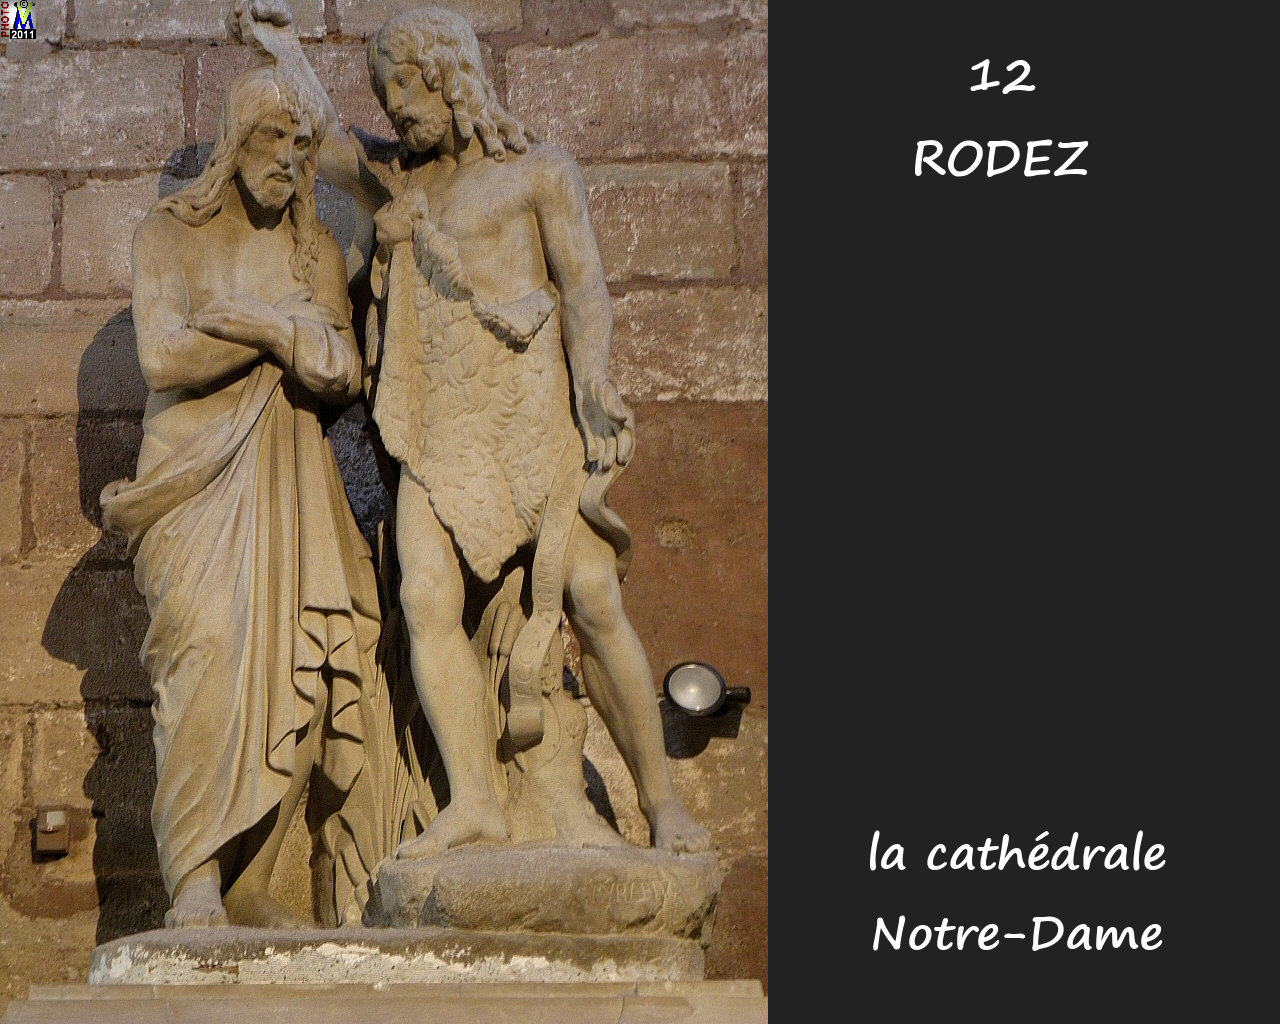 12RODEZ_cathedrale_260.jpg